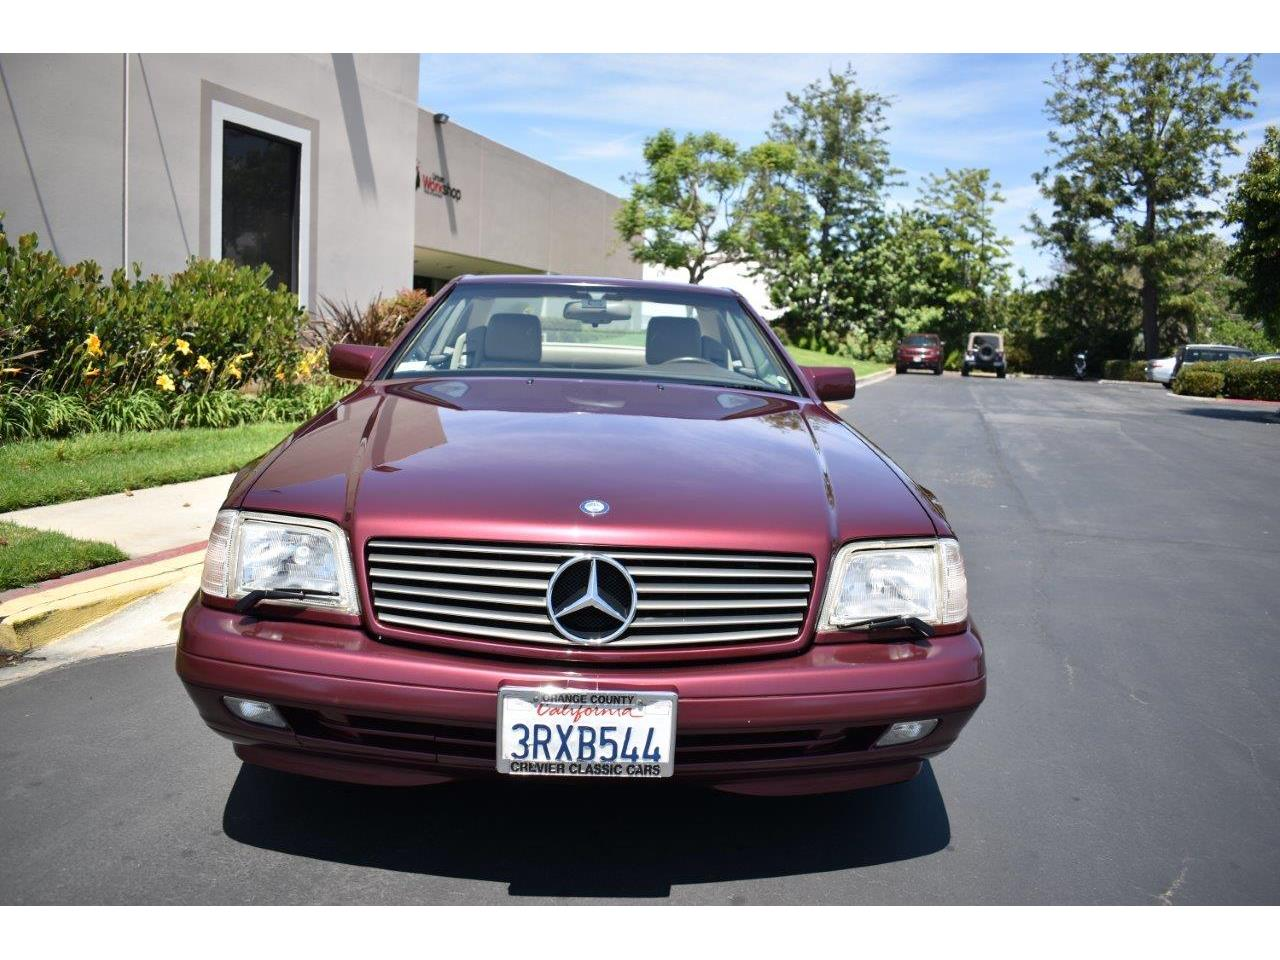 1996 Mercedes-Benz 500SL for sale in Costa Mesa, CA – photo 8